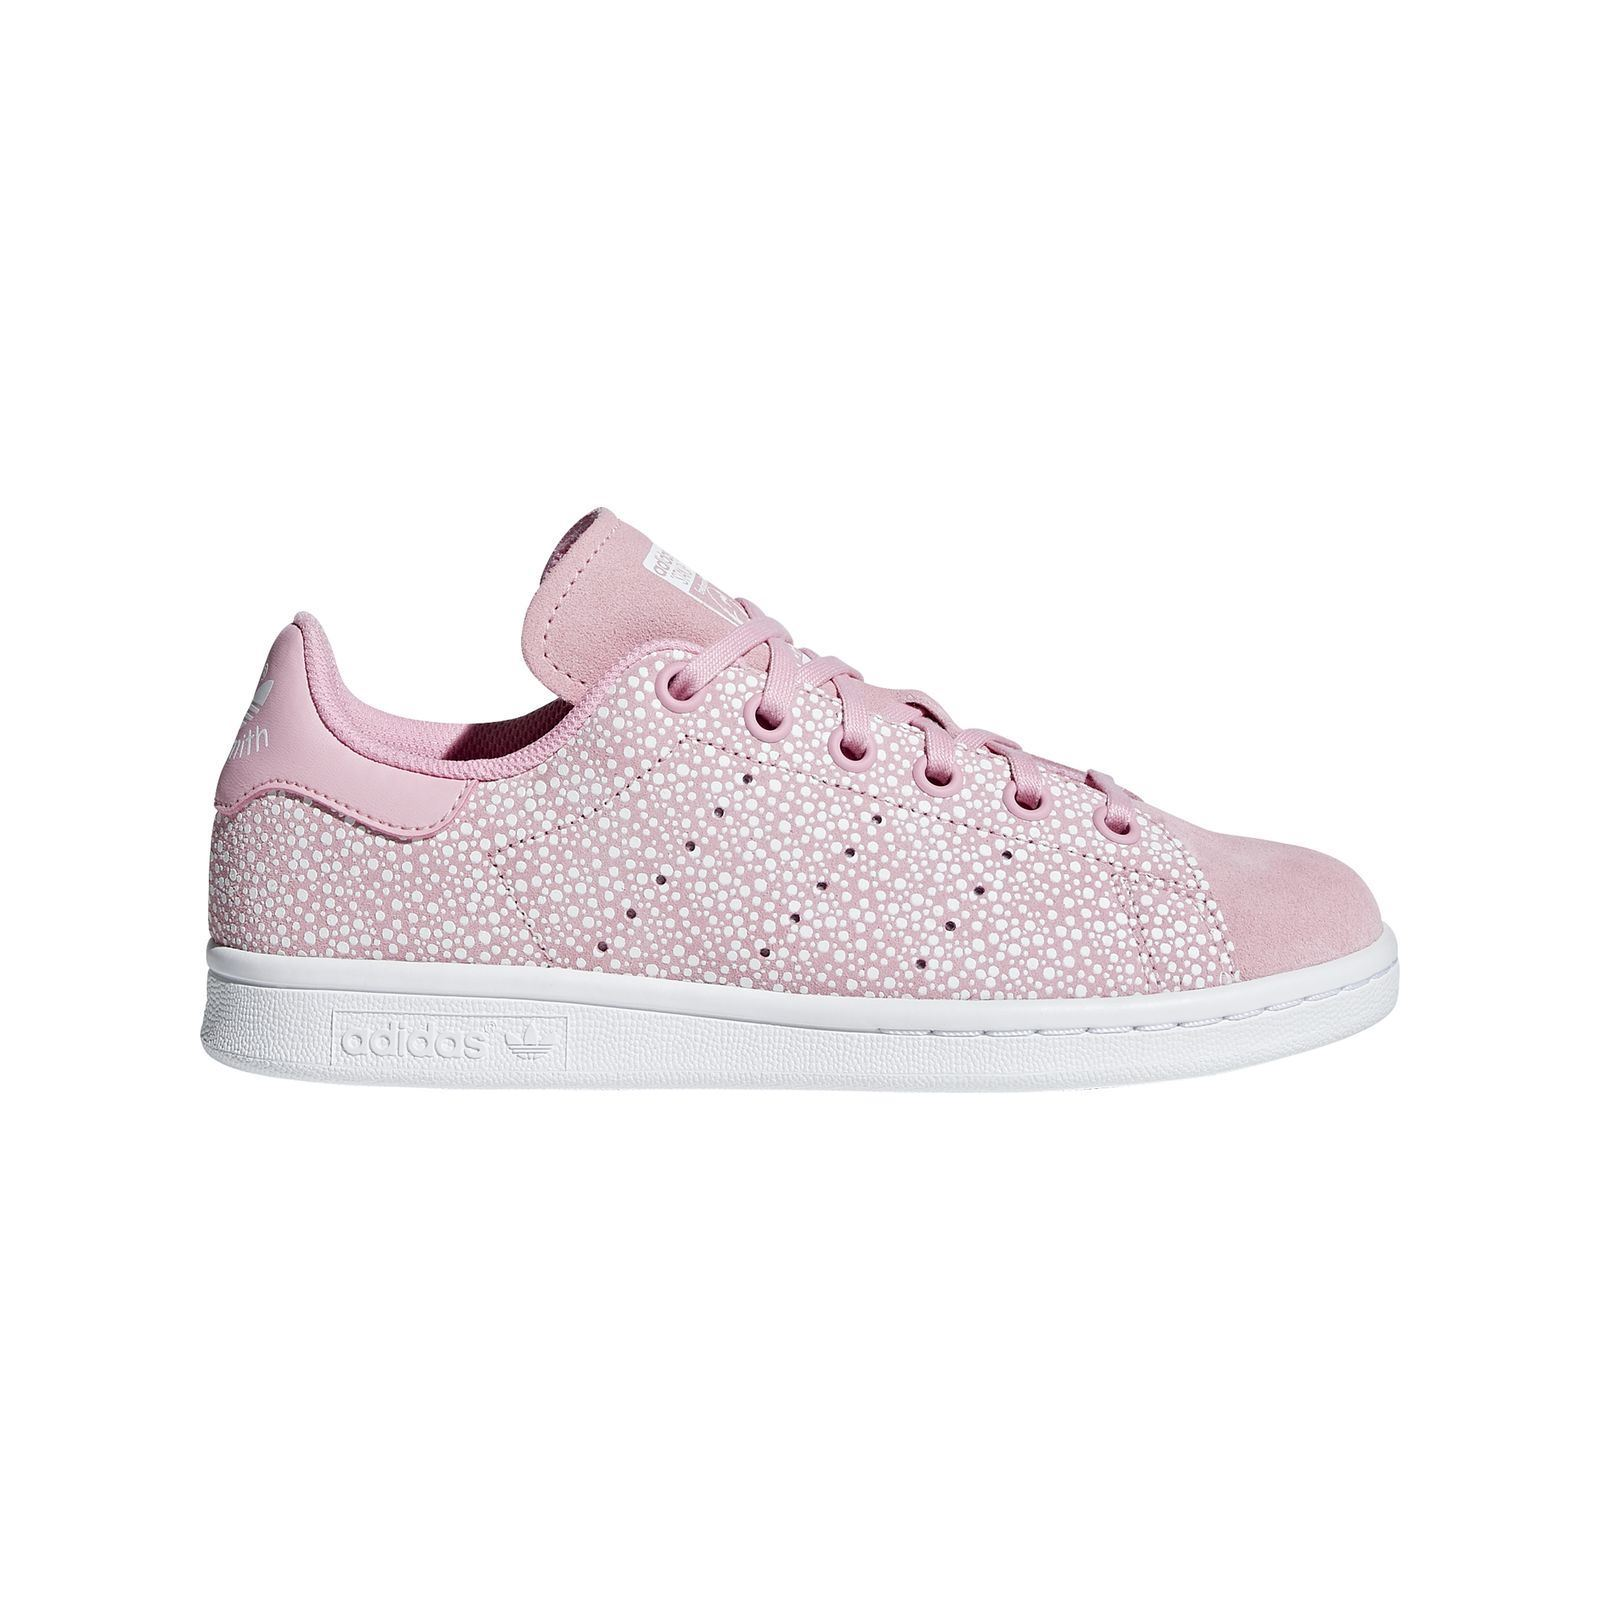 adidas Originals Stan Smith J Leren gympen roze BrandAlley    adidas Originals Stan Smith J Leren gympen roze   title=  f70a7299370ce867c5dd2f4a82c1f4c2     BrandAlley